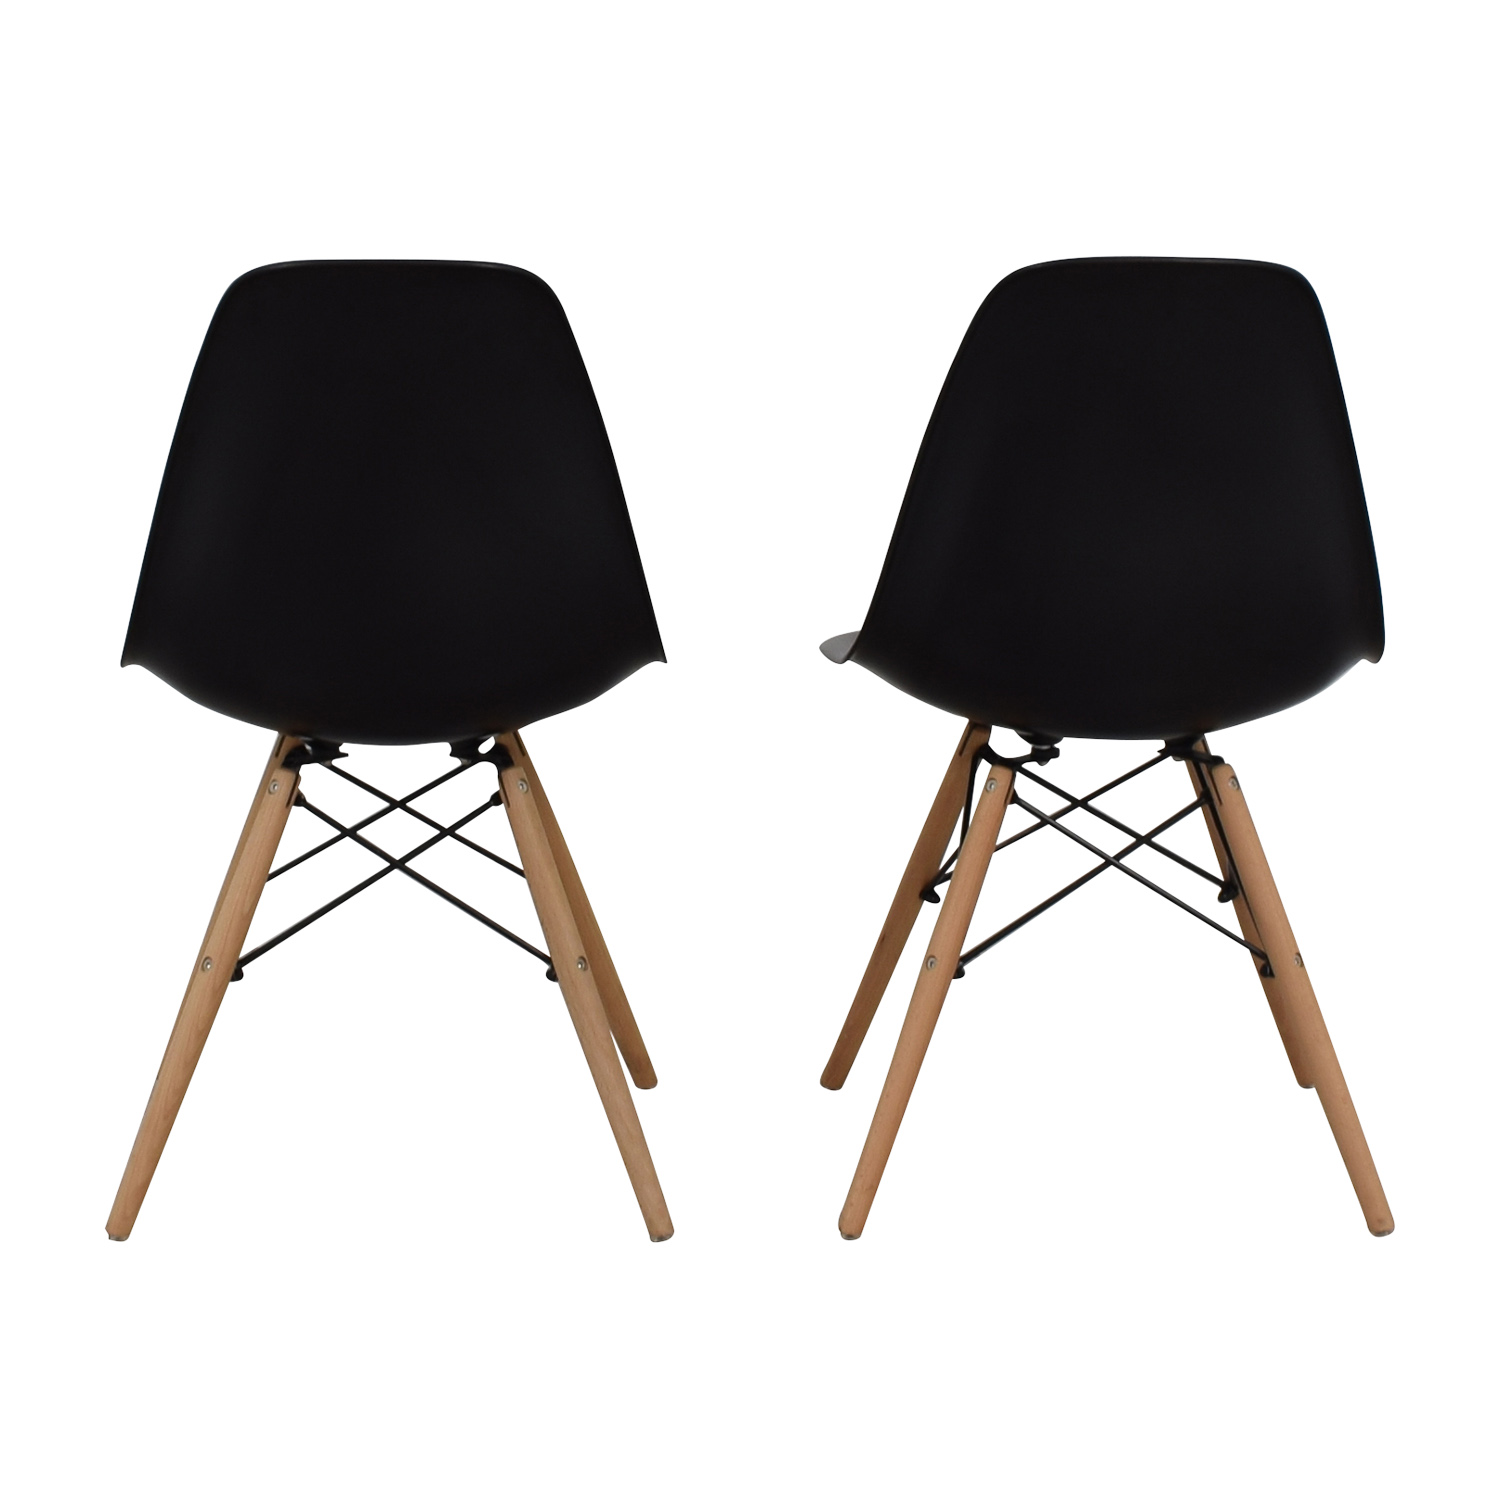 CB2 CB2 Black and Beech Wood Chairs used